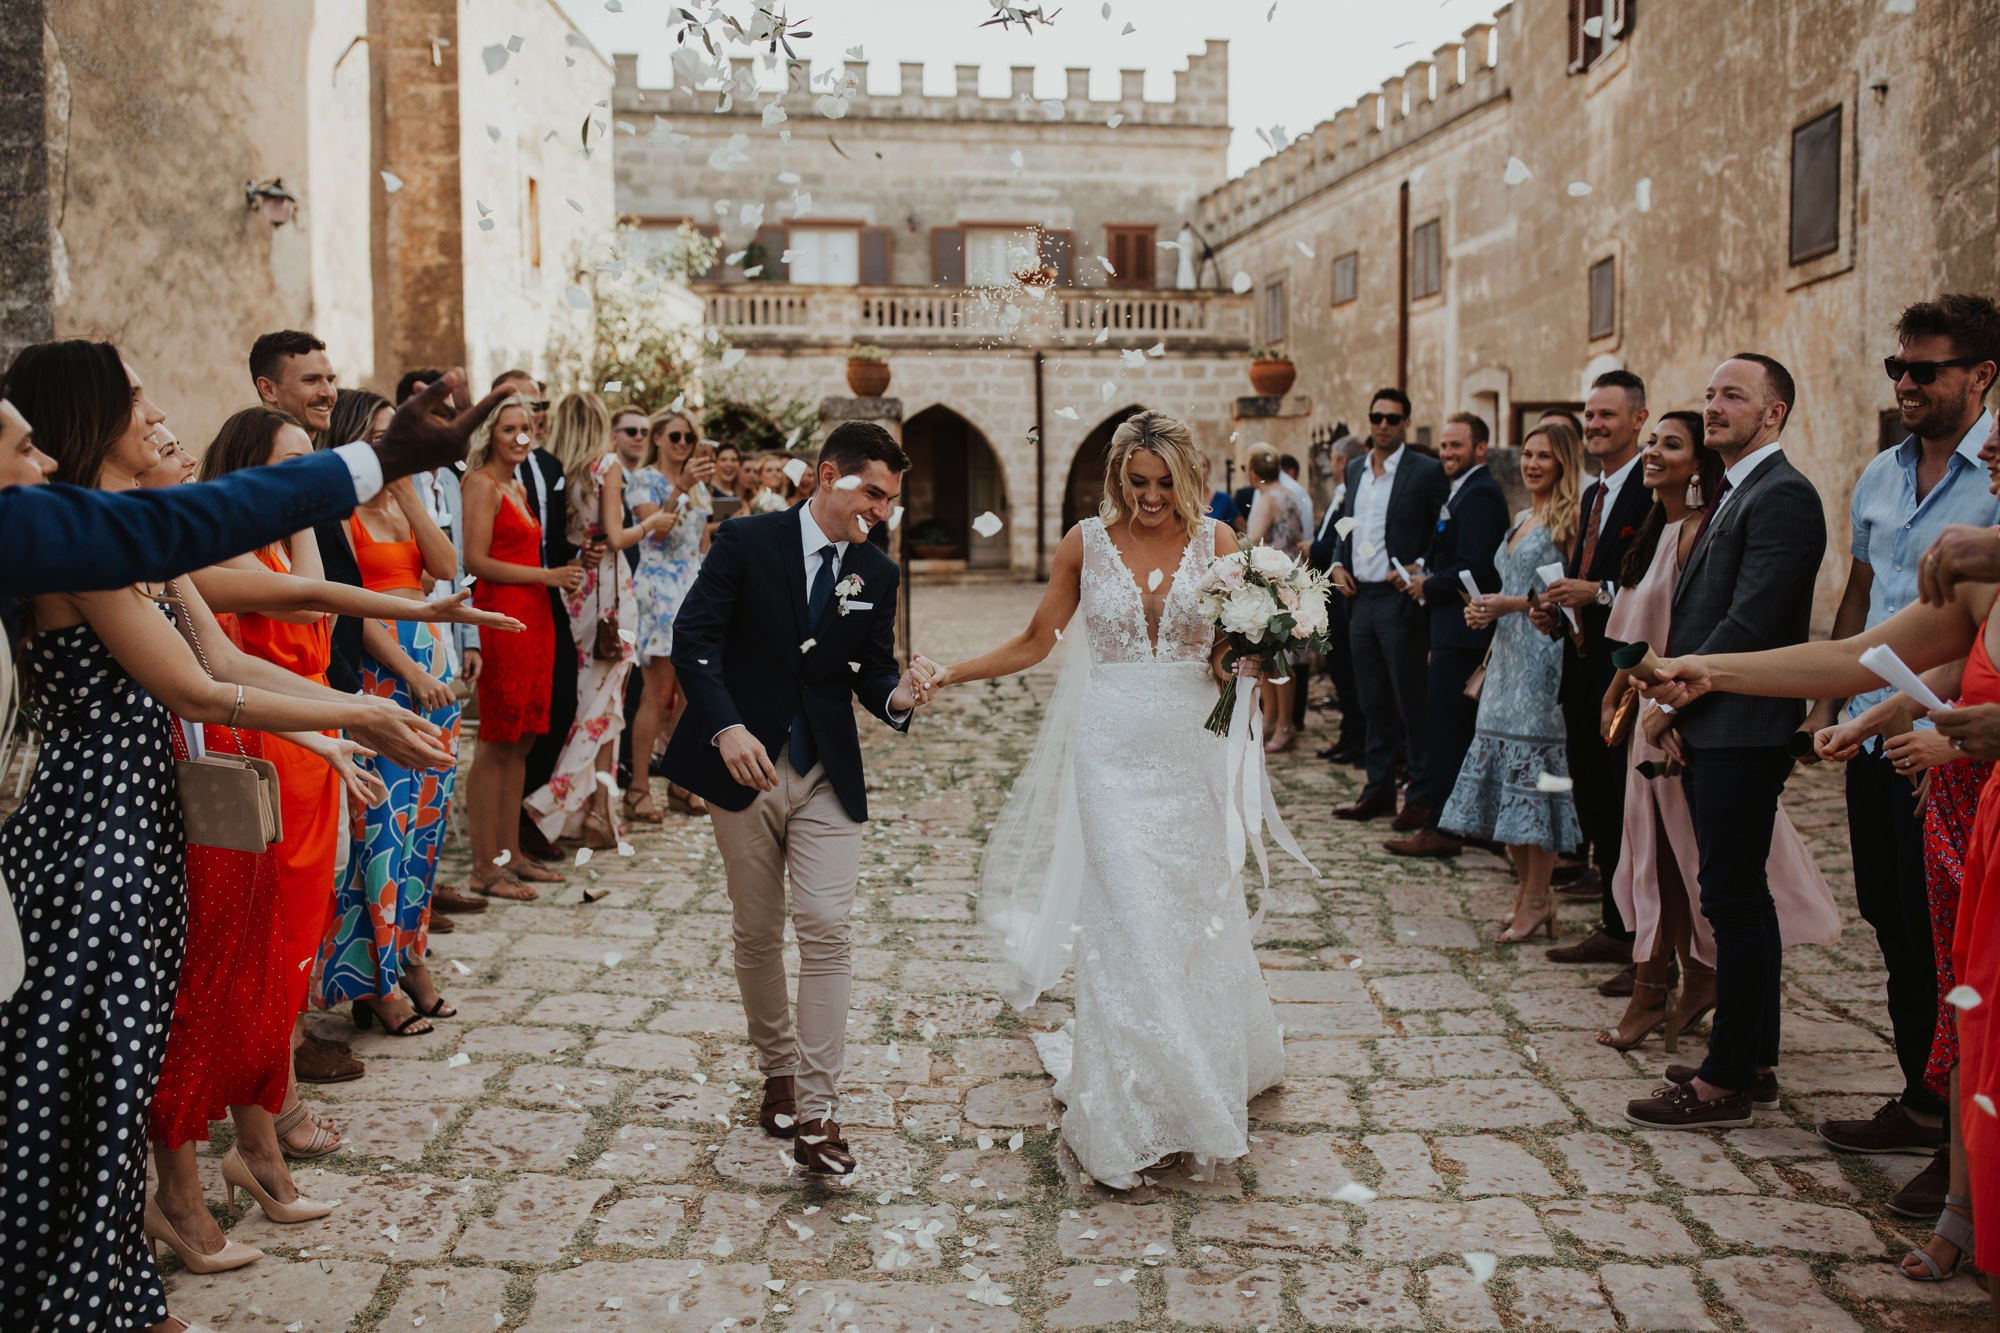 0000000046_Rob and Lucy-443_Weddings_Destination_Italy_got_Just_Engaged.jpg